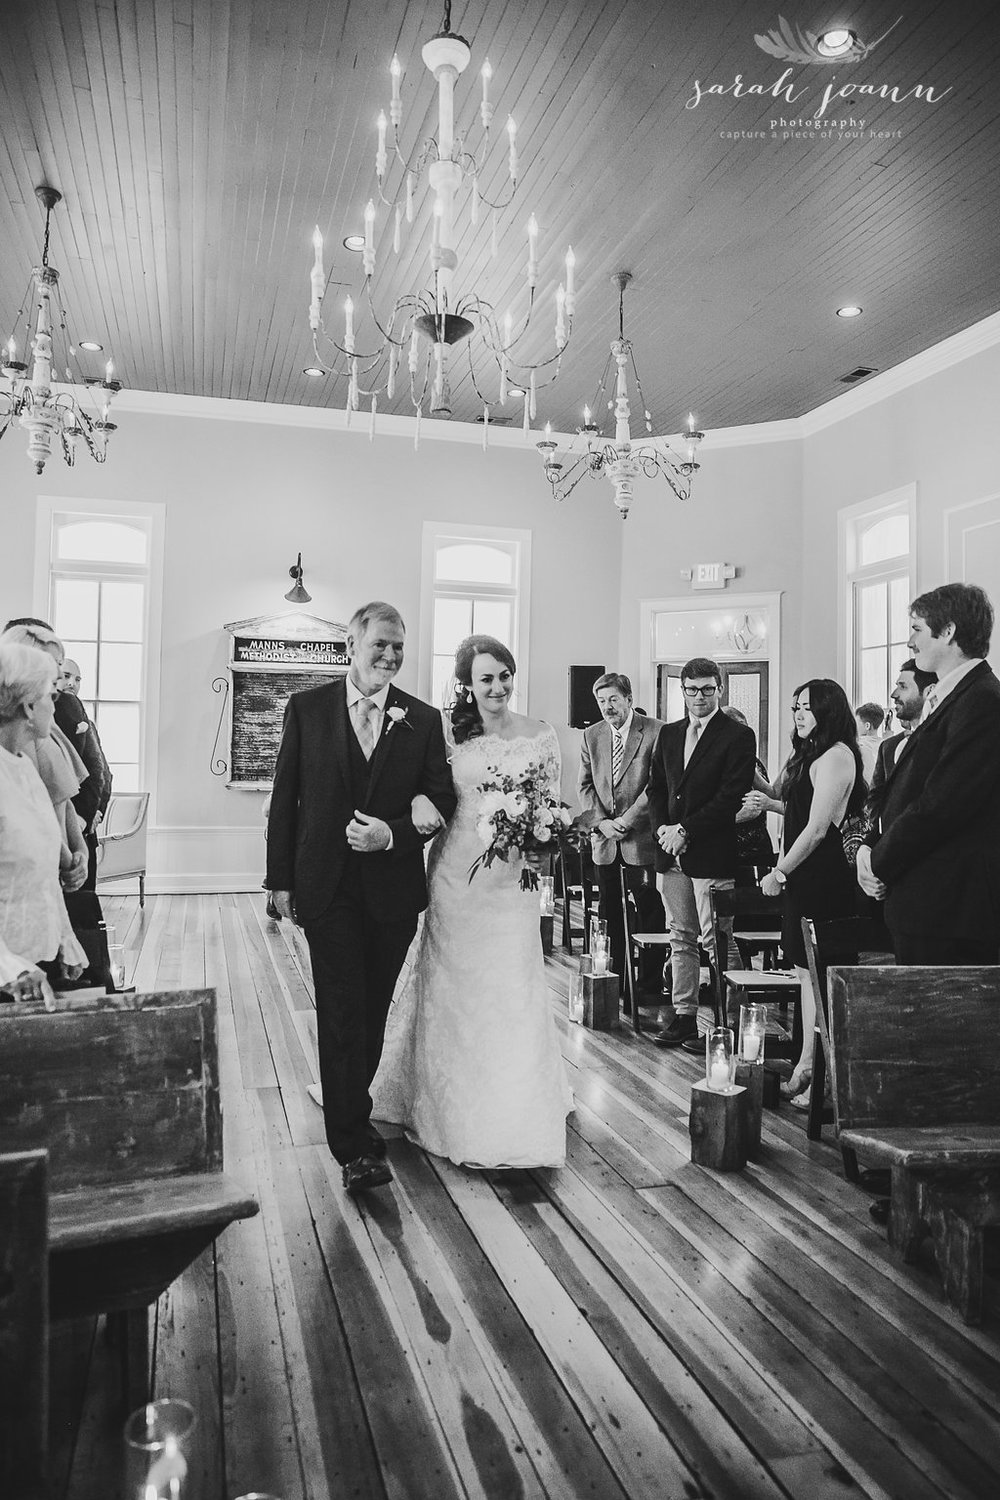 the-Parlour-wedding-photographer-B&B-IMG_61591051.jpg